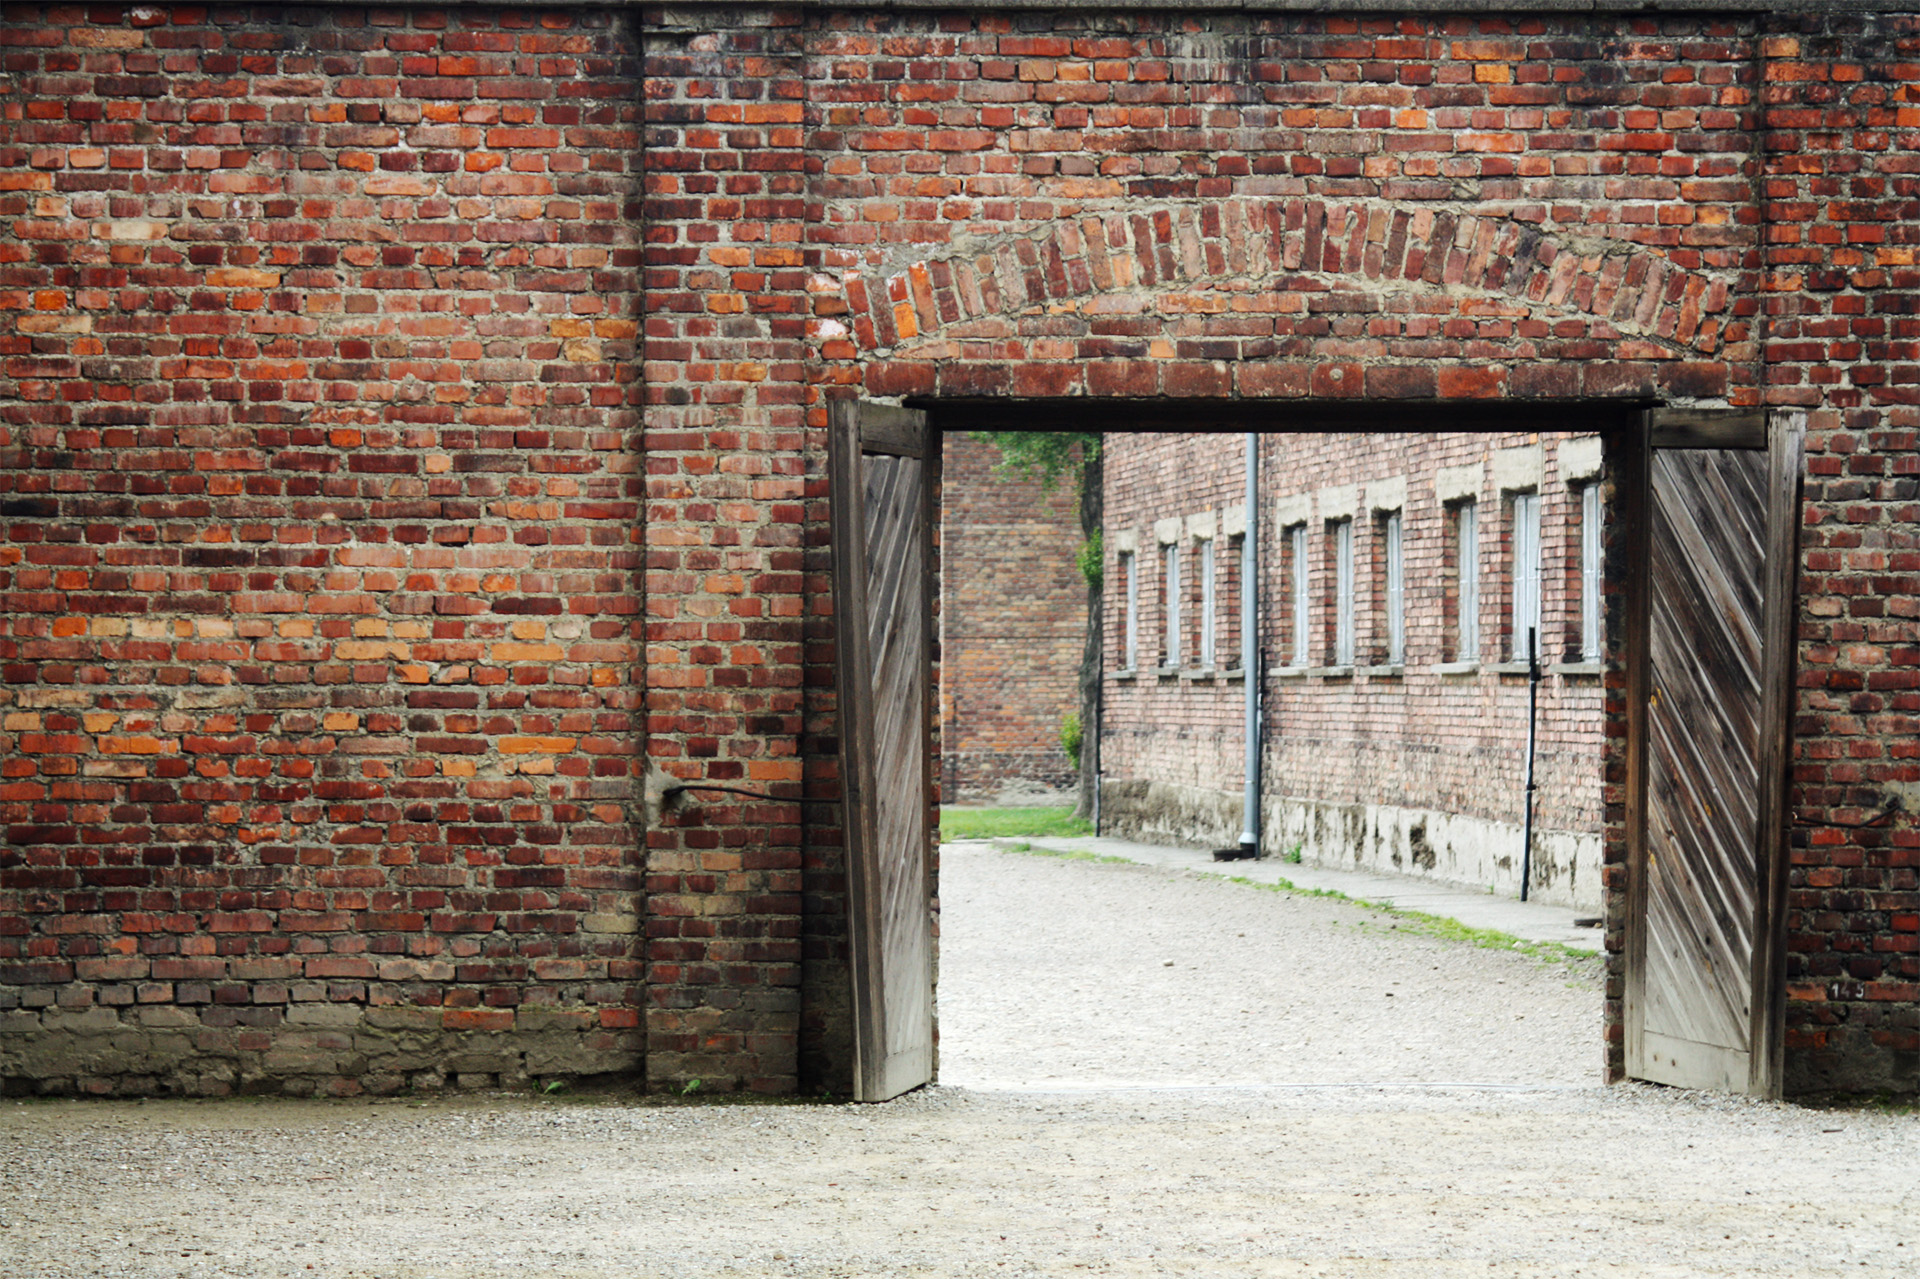 Gates to a courtyard used for executions, Auschwitz I.